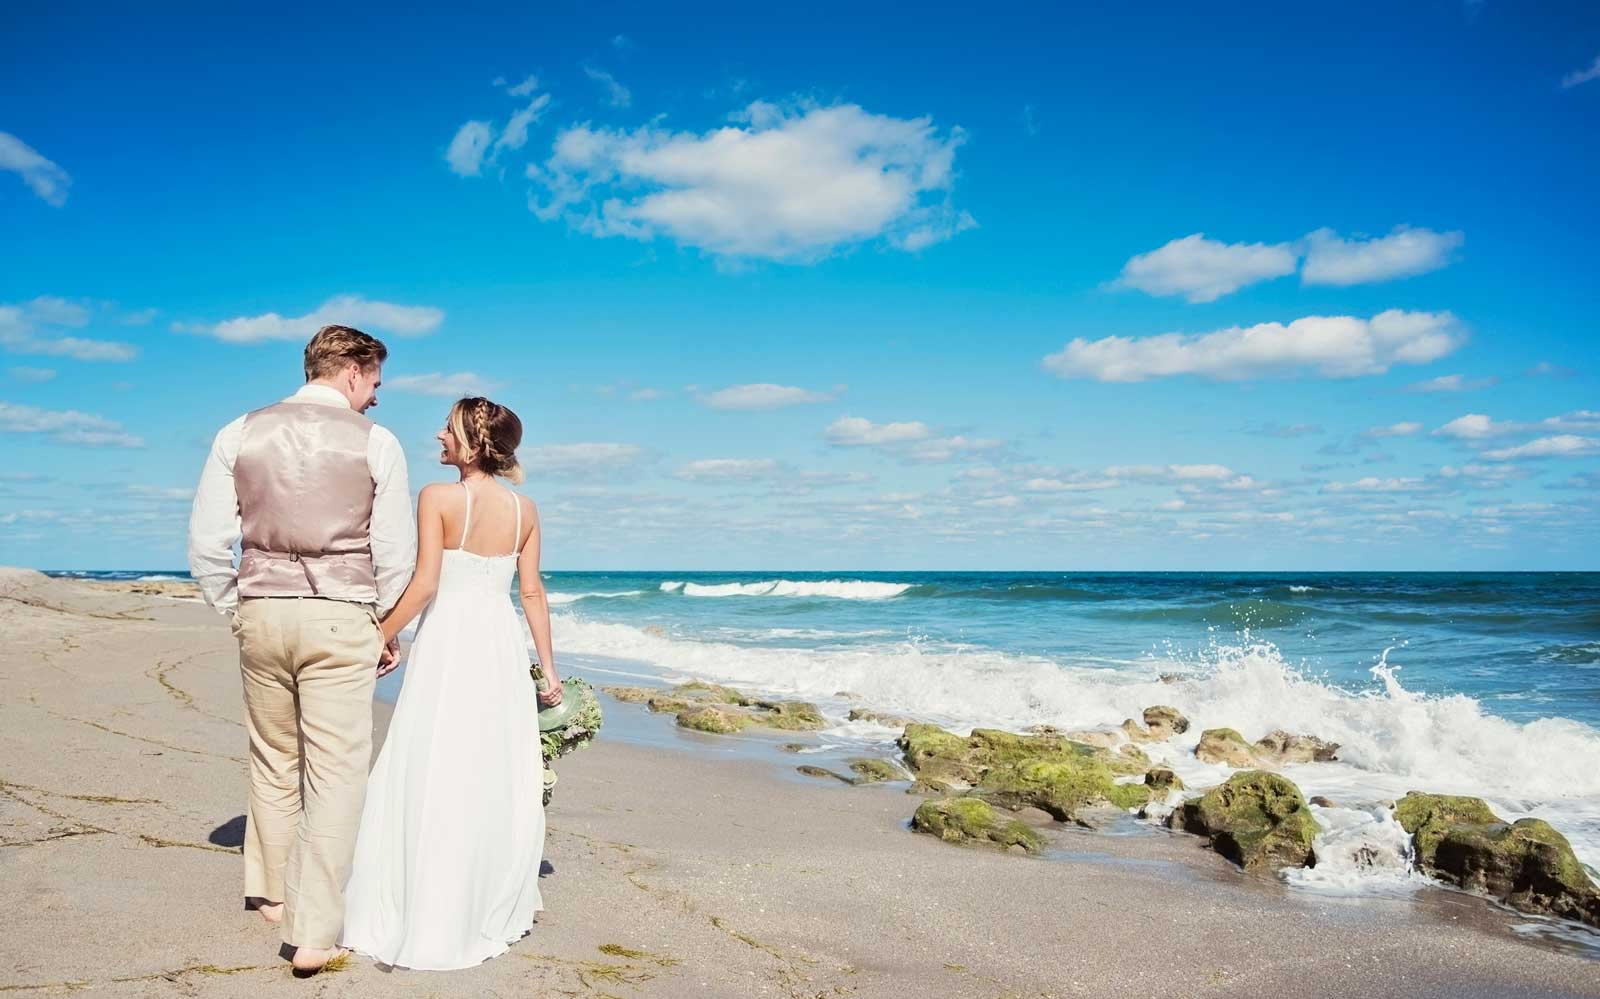 How to Plan the Florida Destination Wedding of Your Dreams